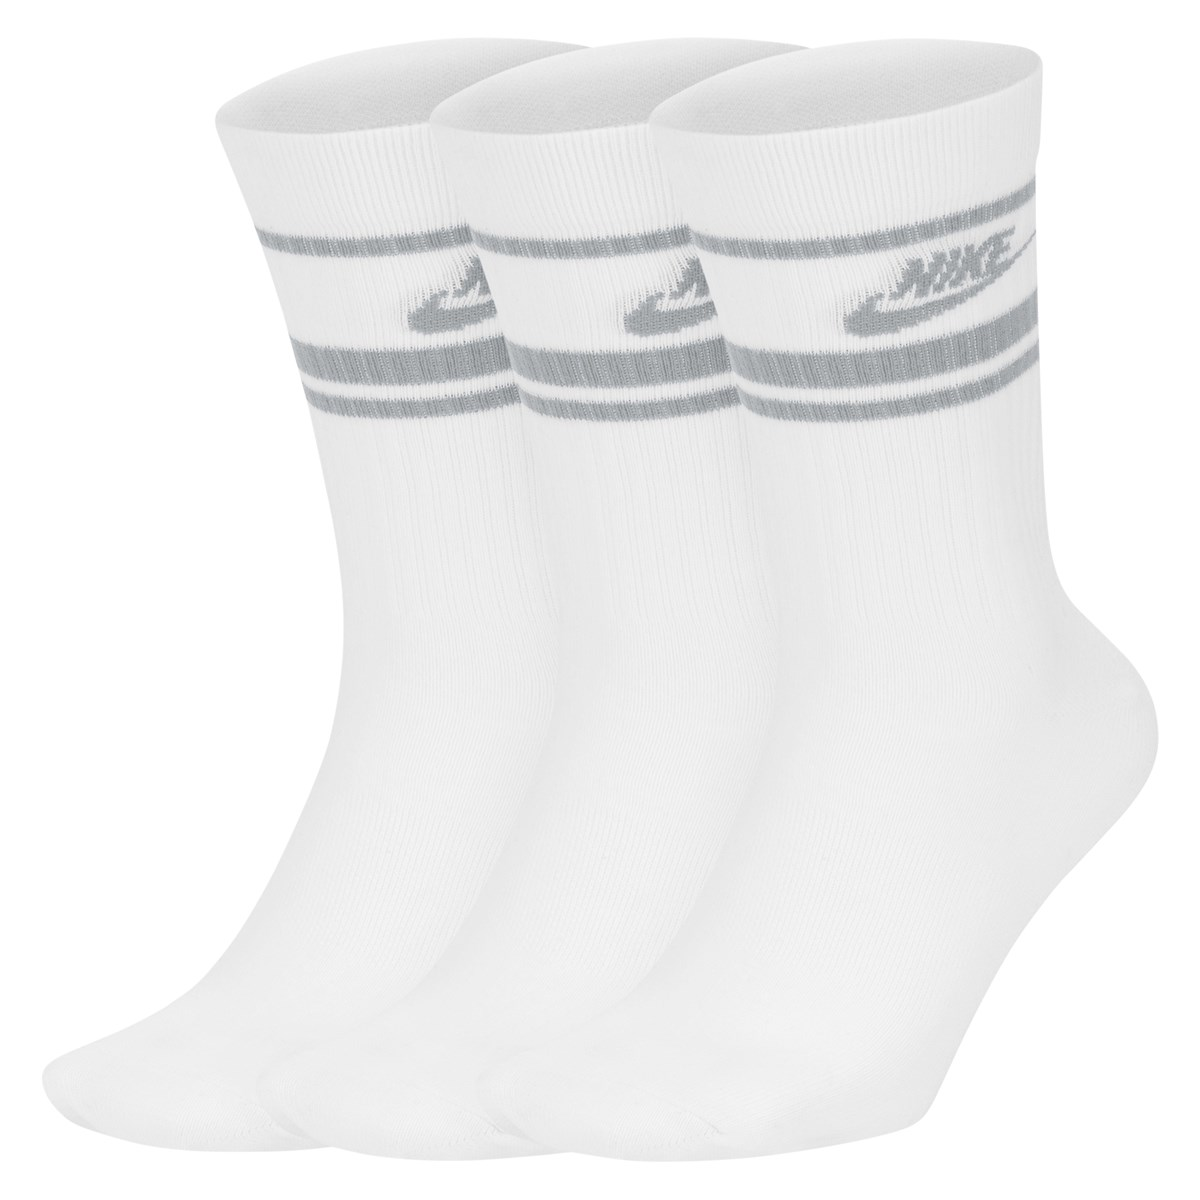 NWS Essential Crew Socks in White